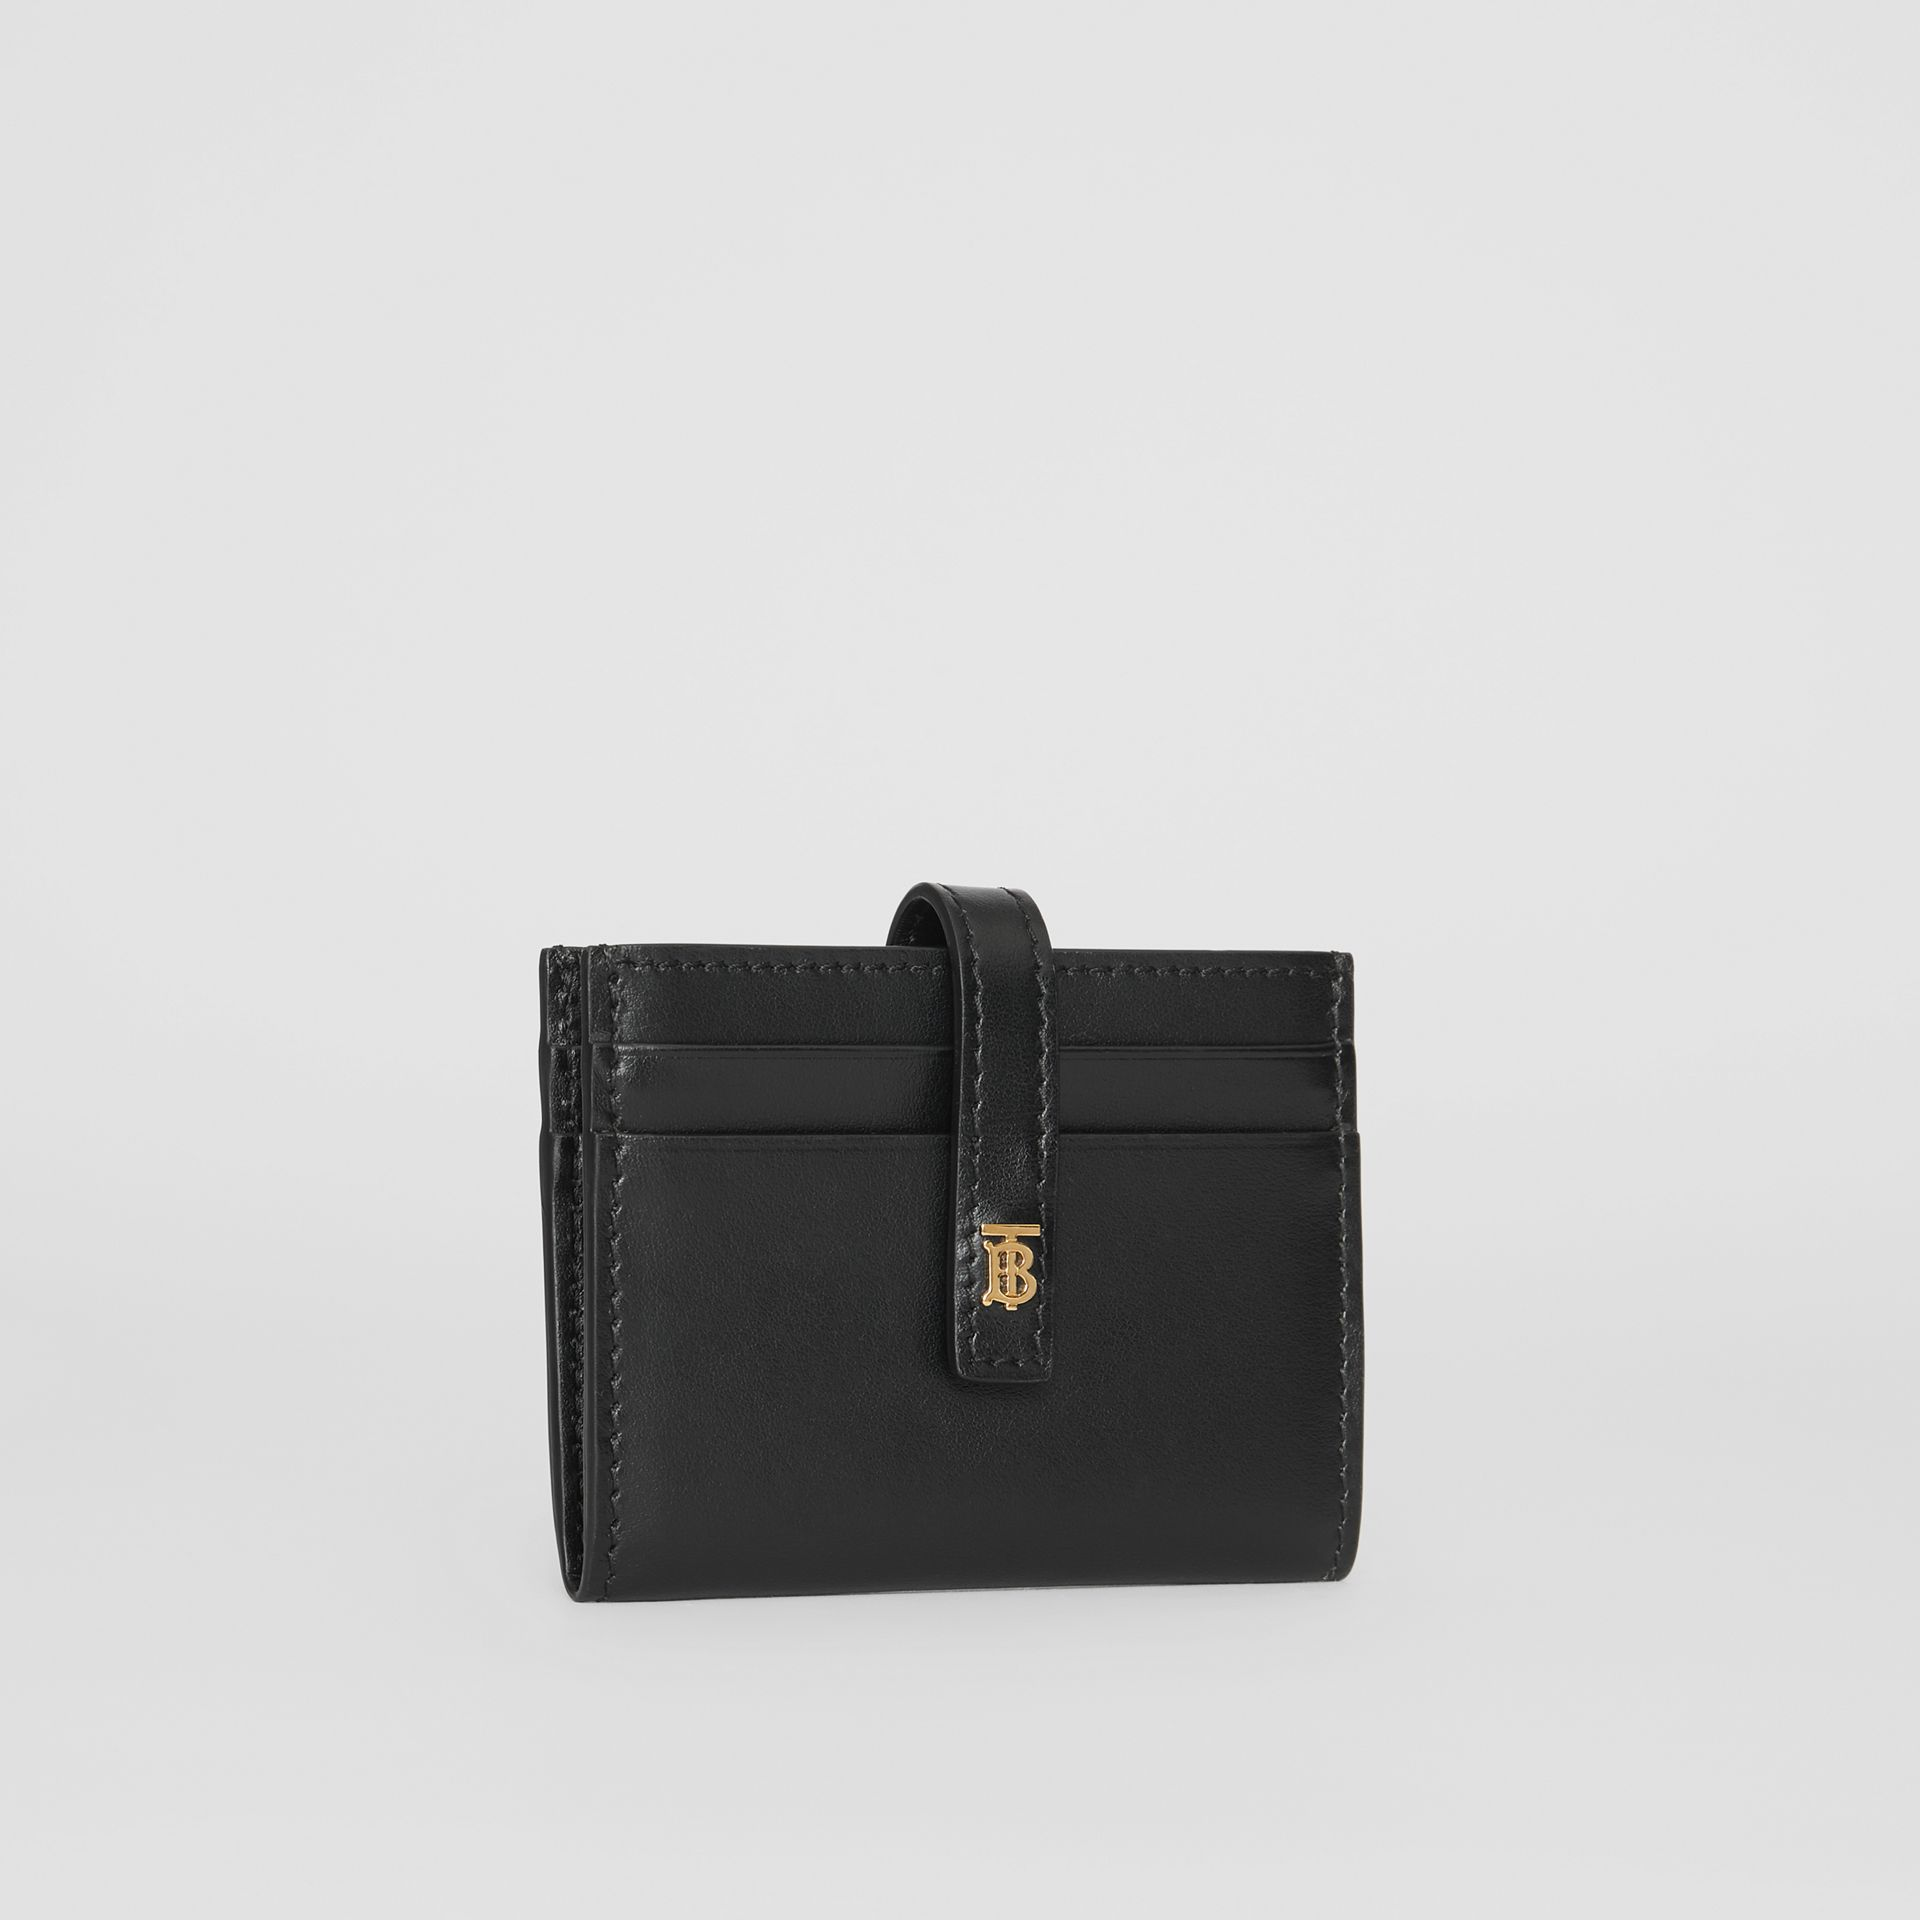 Monogram Motif Leather Folding Card Case in Black - Women | Burberry - gallery image 3